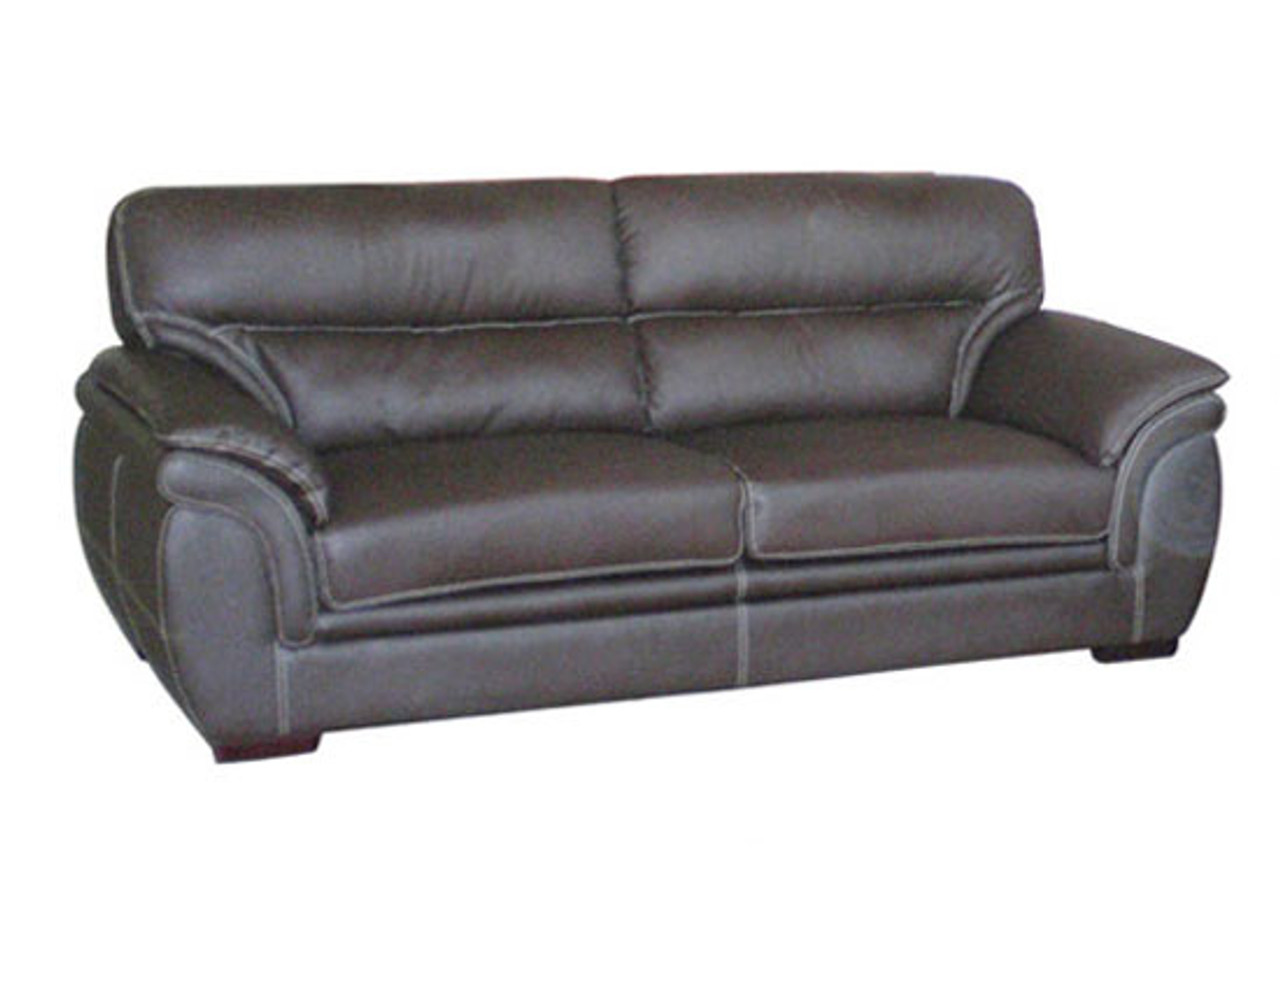 black and red leather sofa bed corner couch matilda 3 seater bonded lounge grey or beige